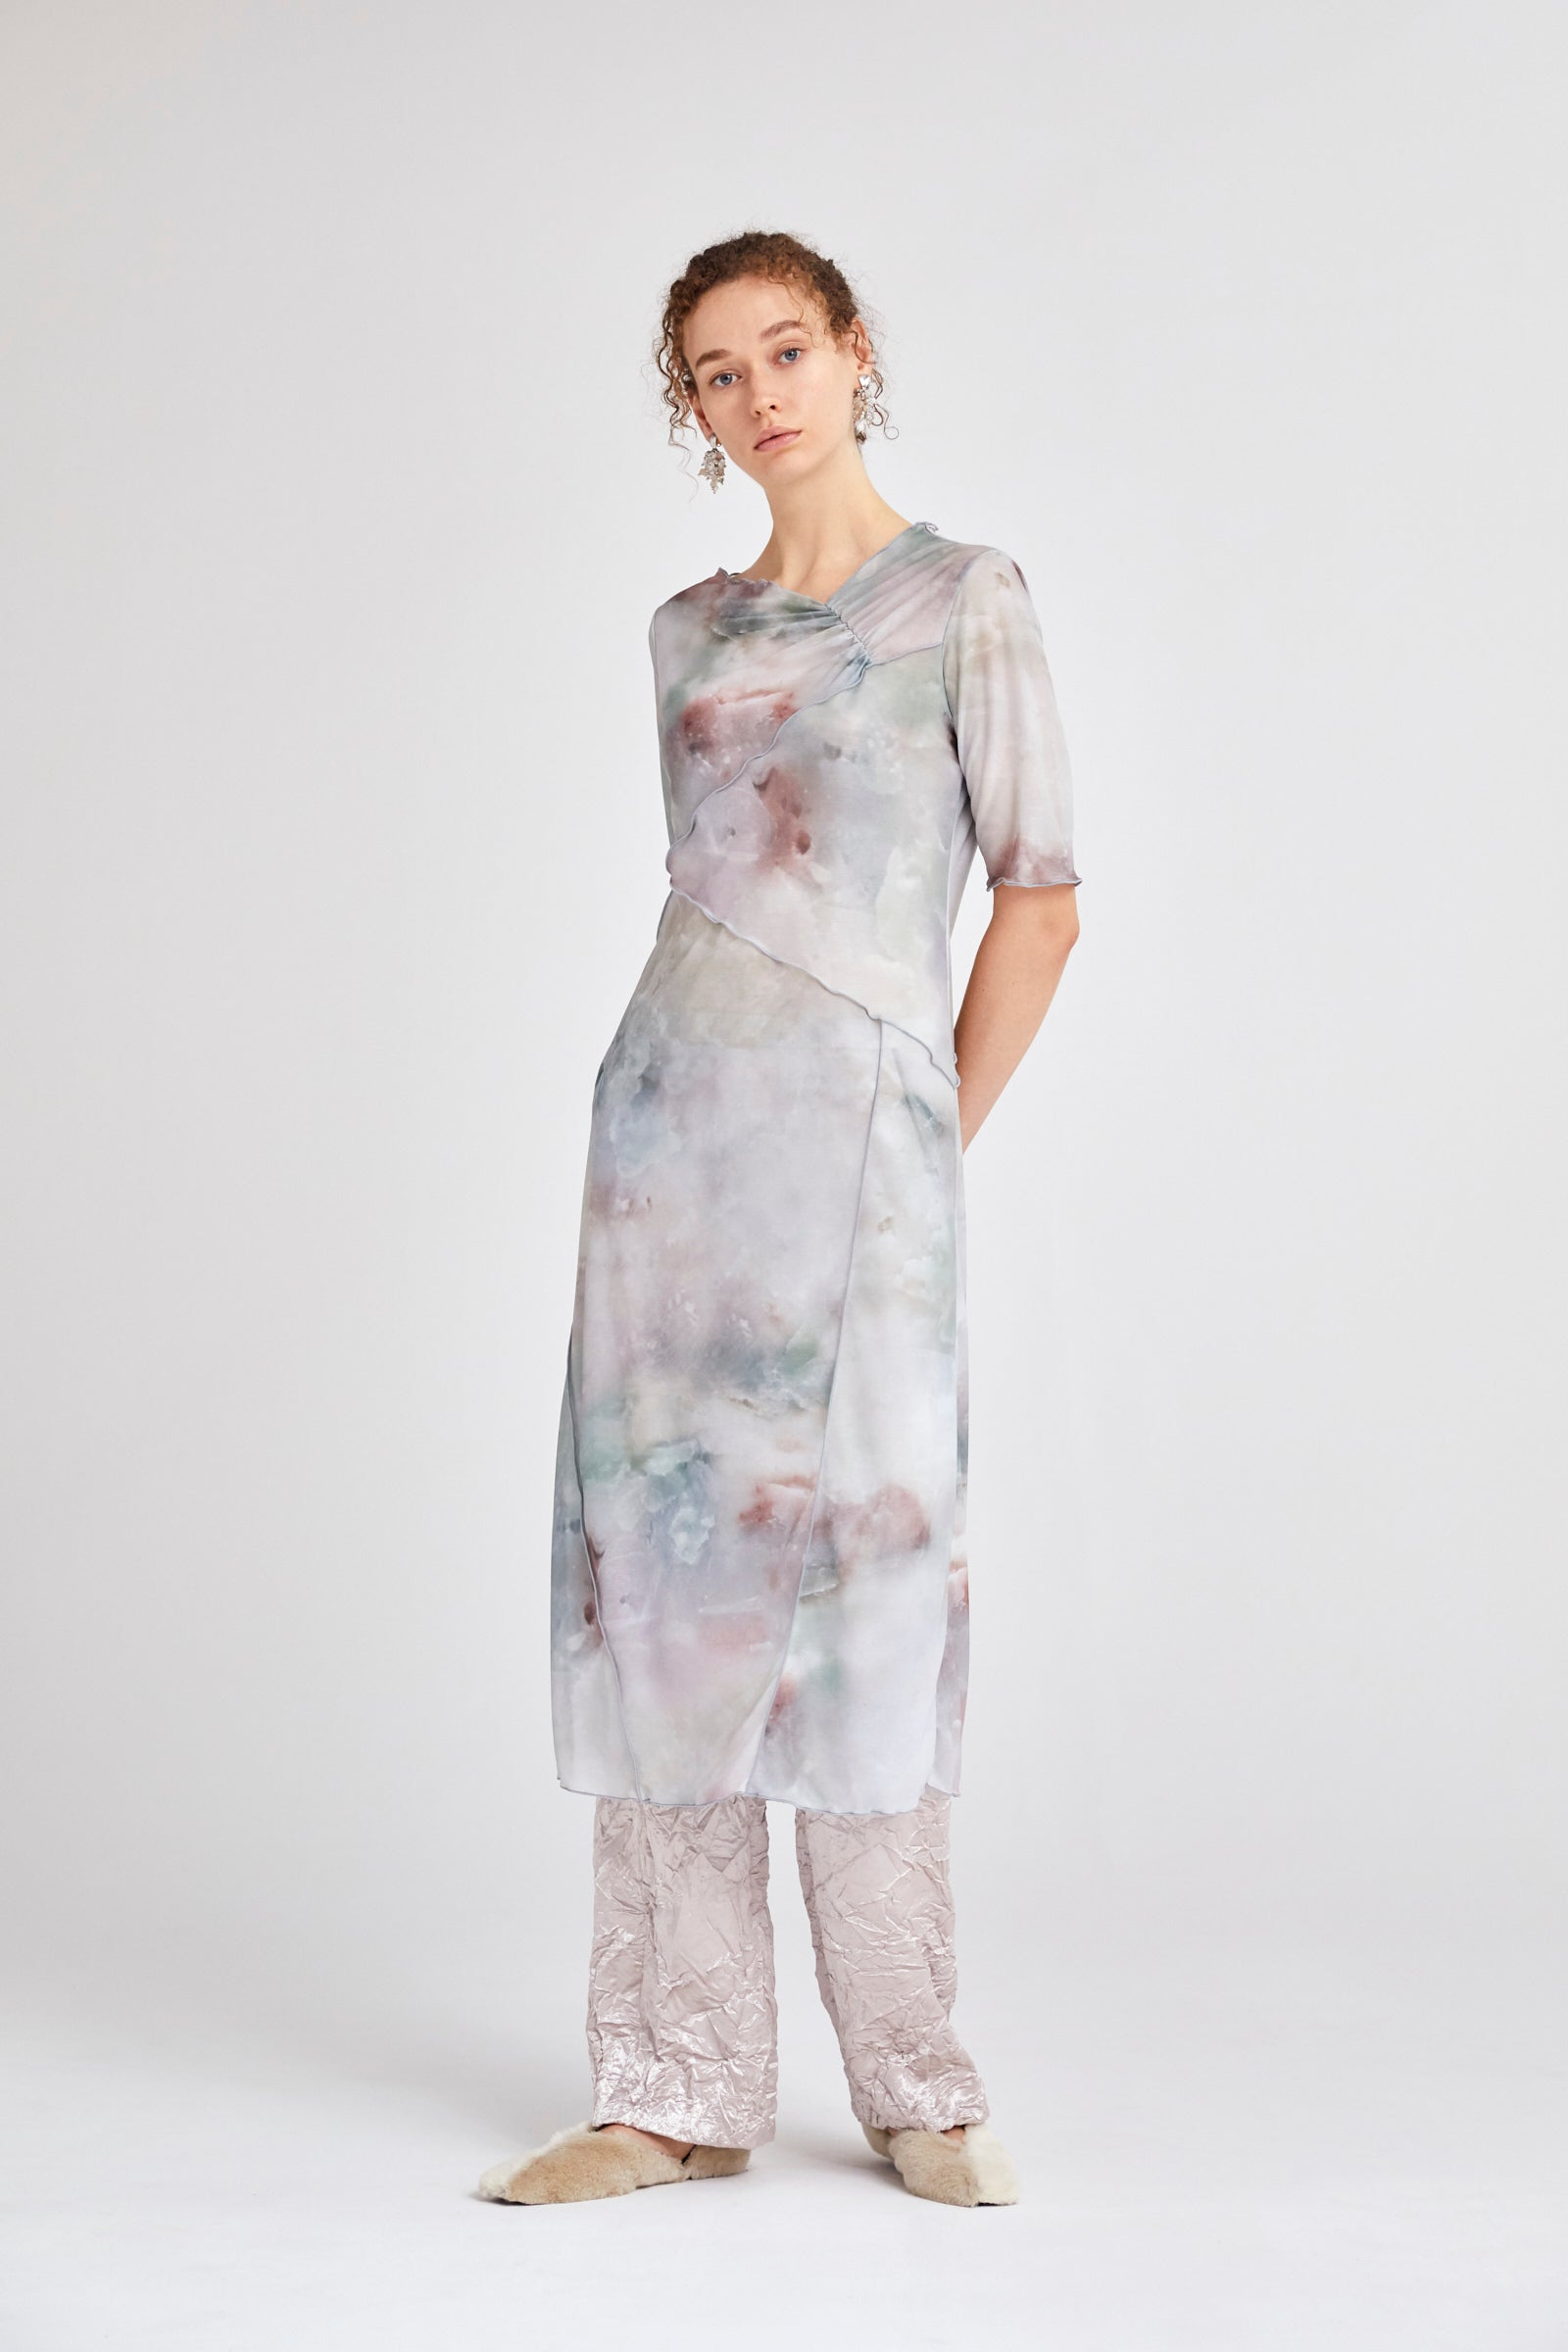 MURRAL candle print sheer dress (green)